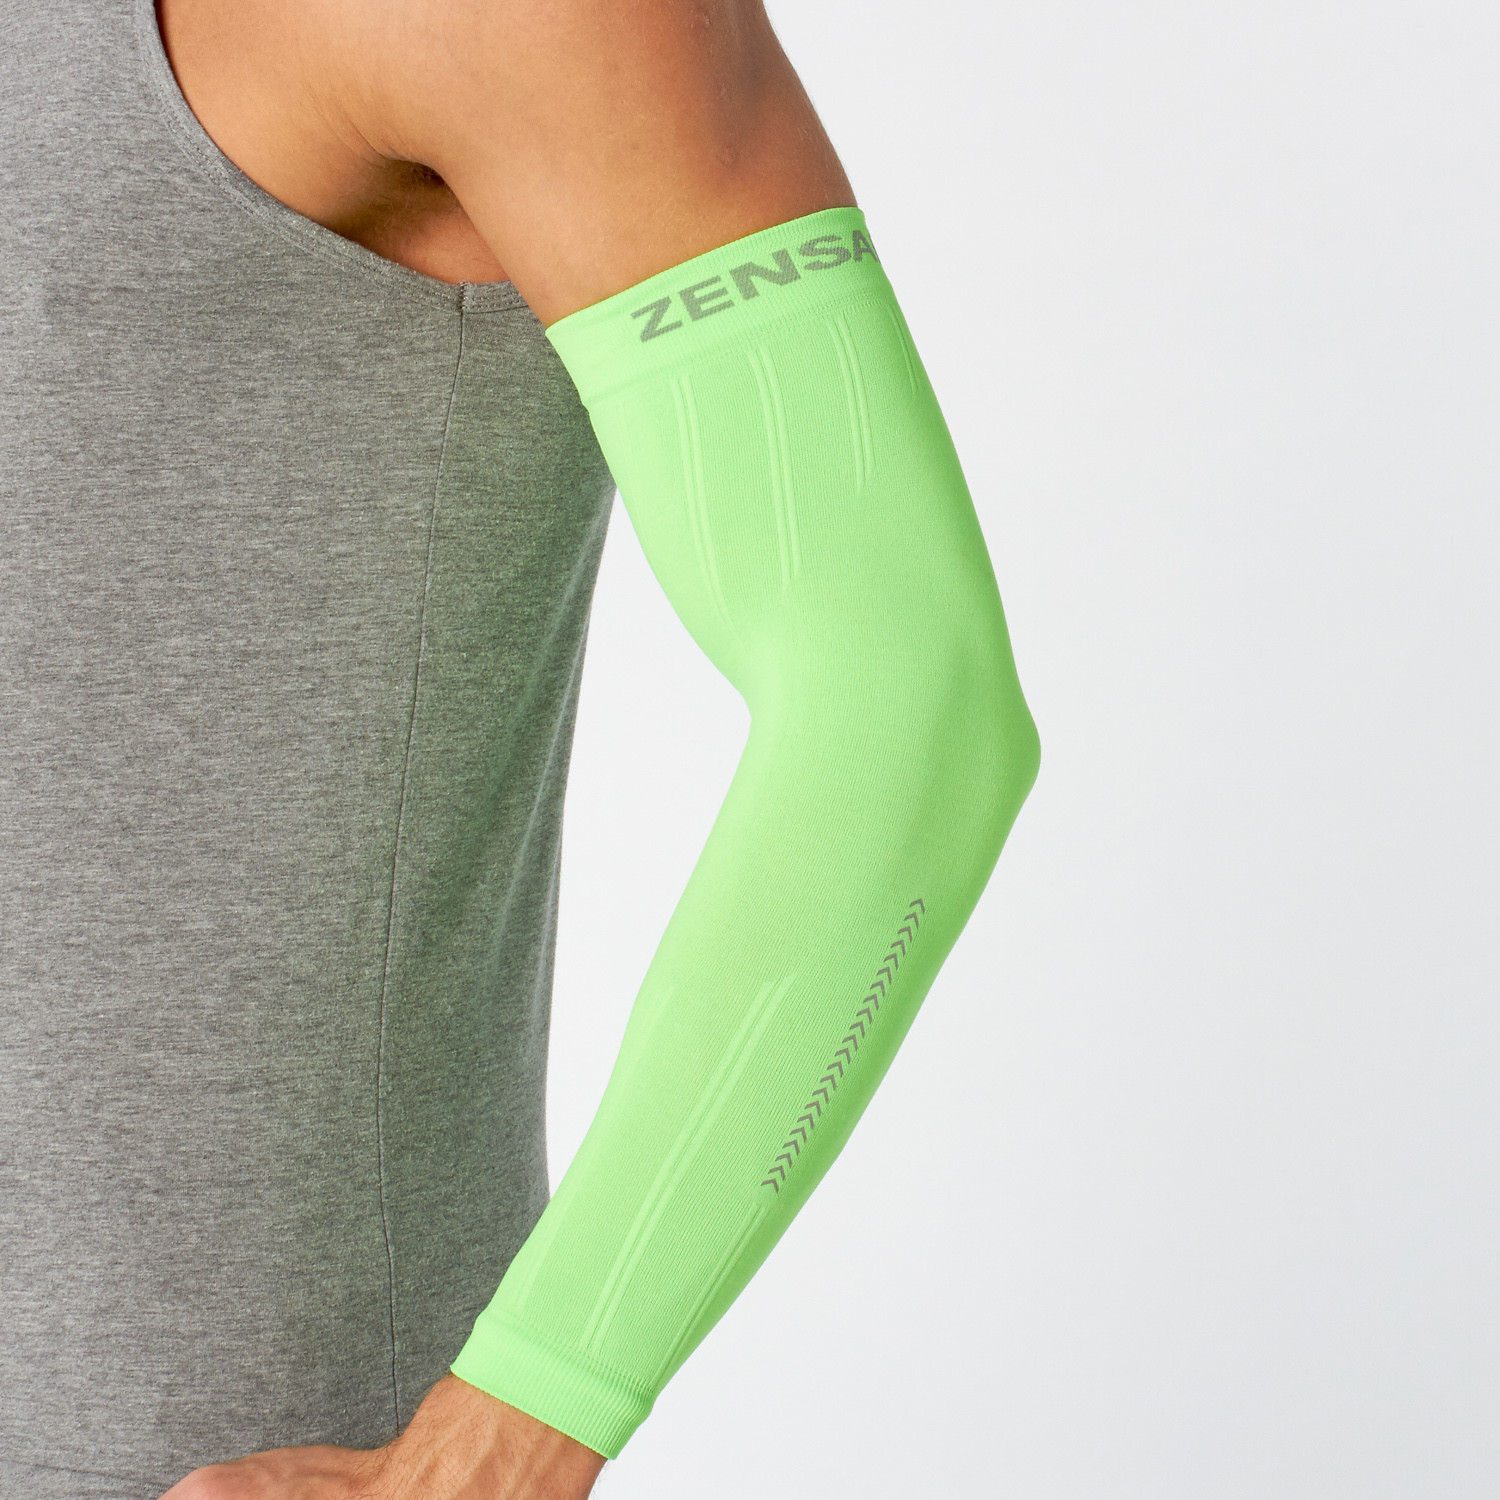 e01bfb4524 Reflect Compression Arm Sleeves // Neon Green (L/XL) - Zensah ...